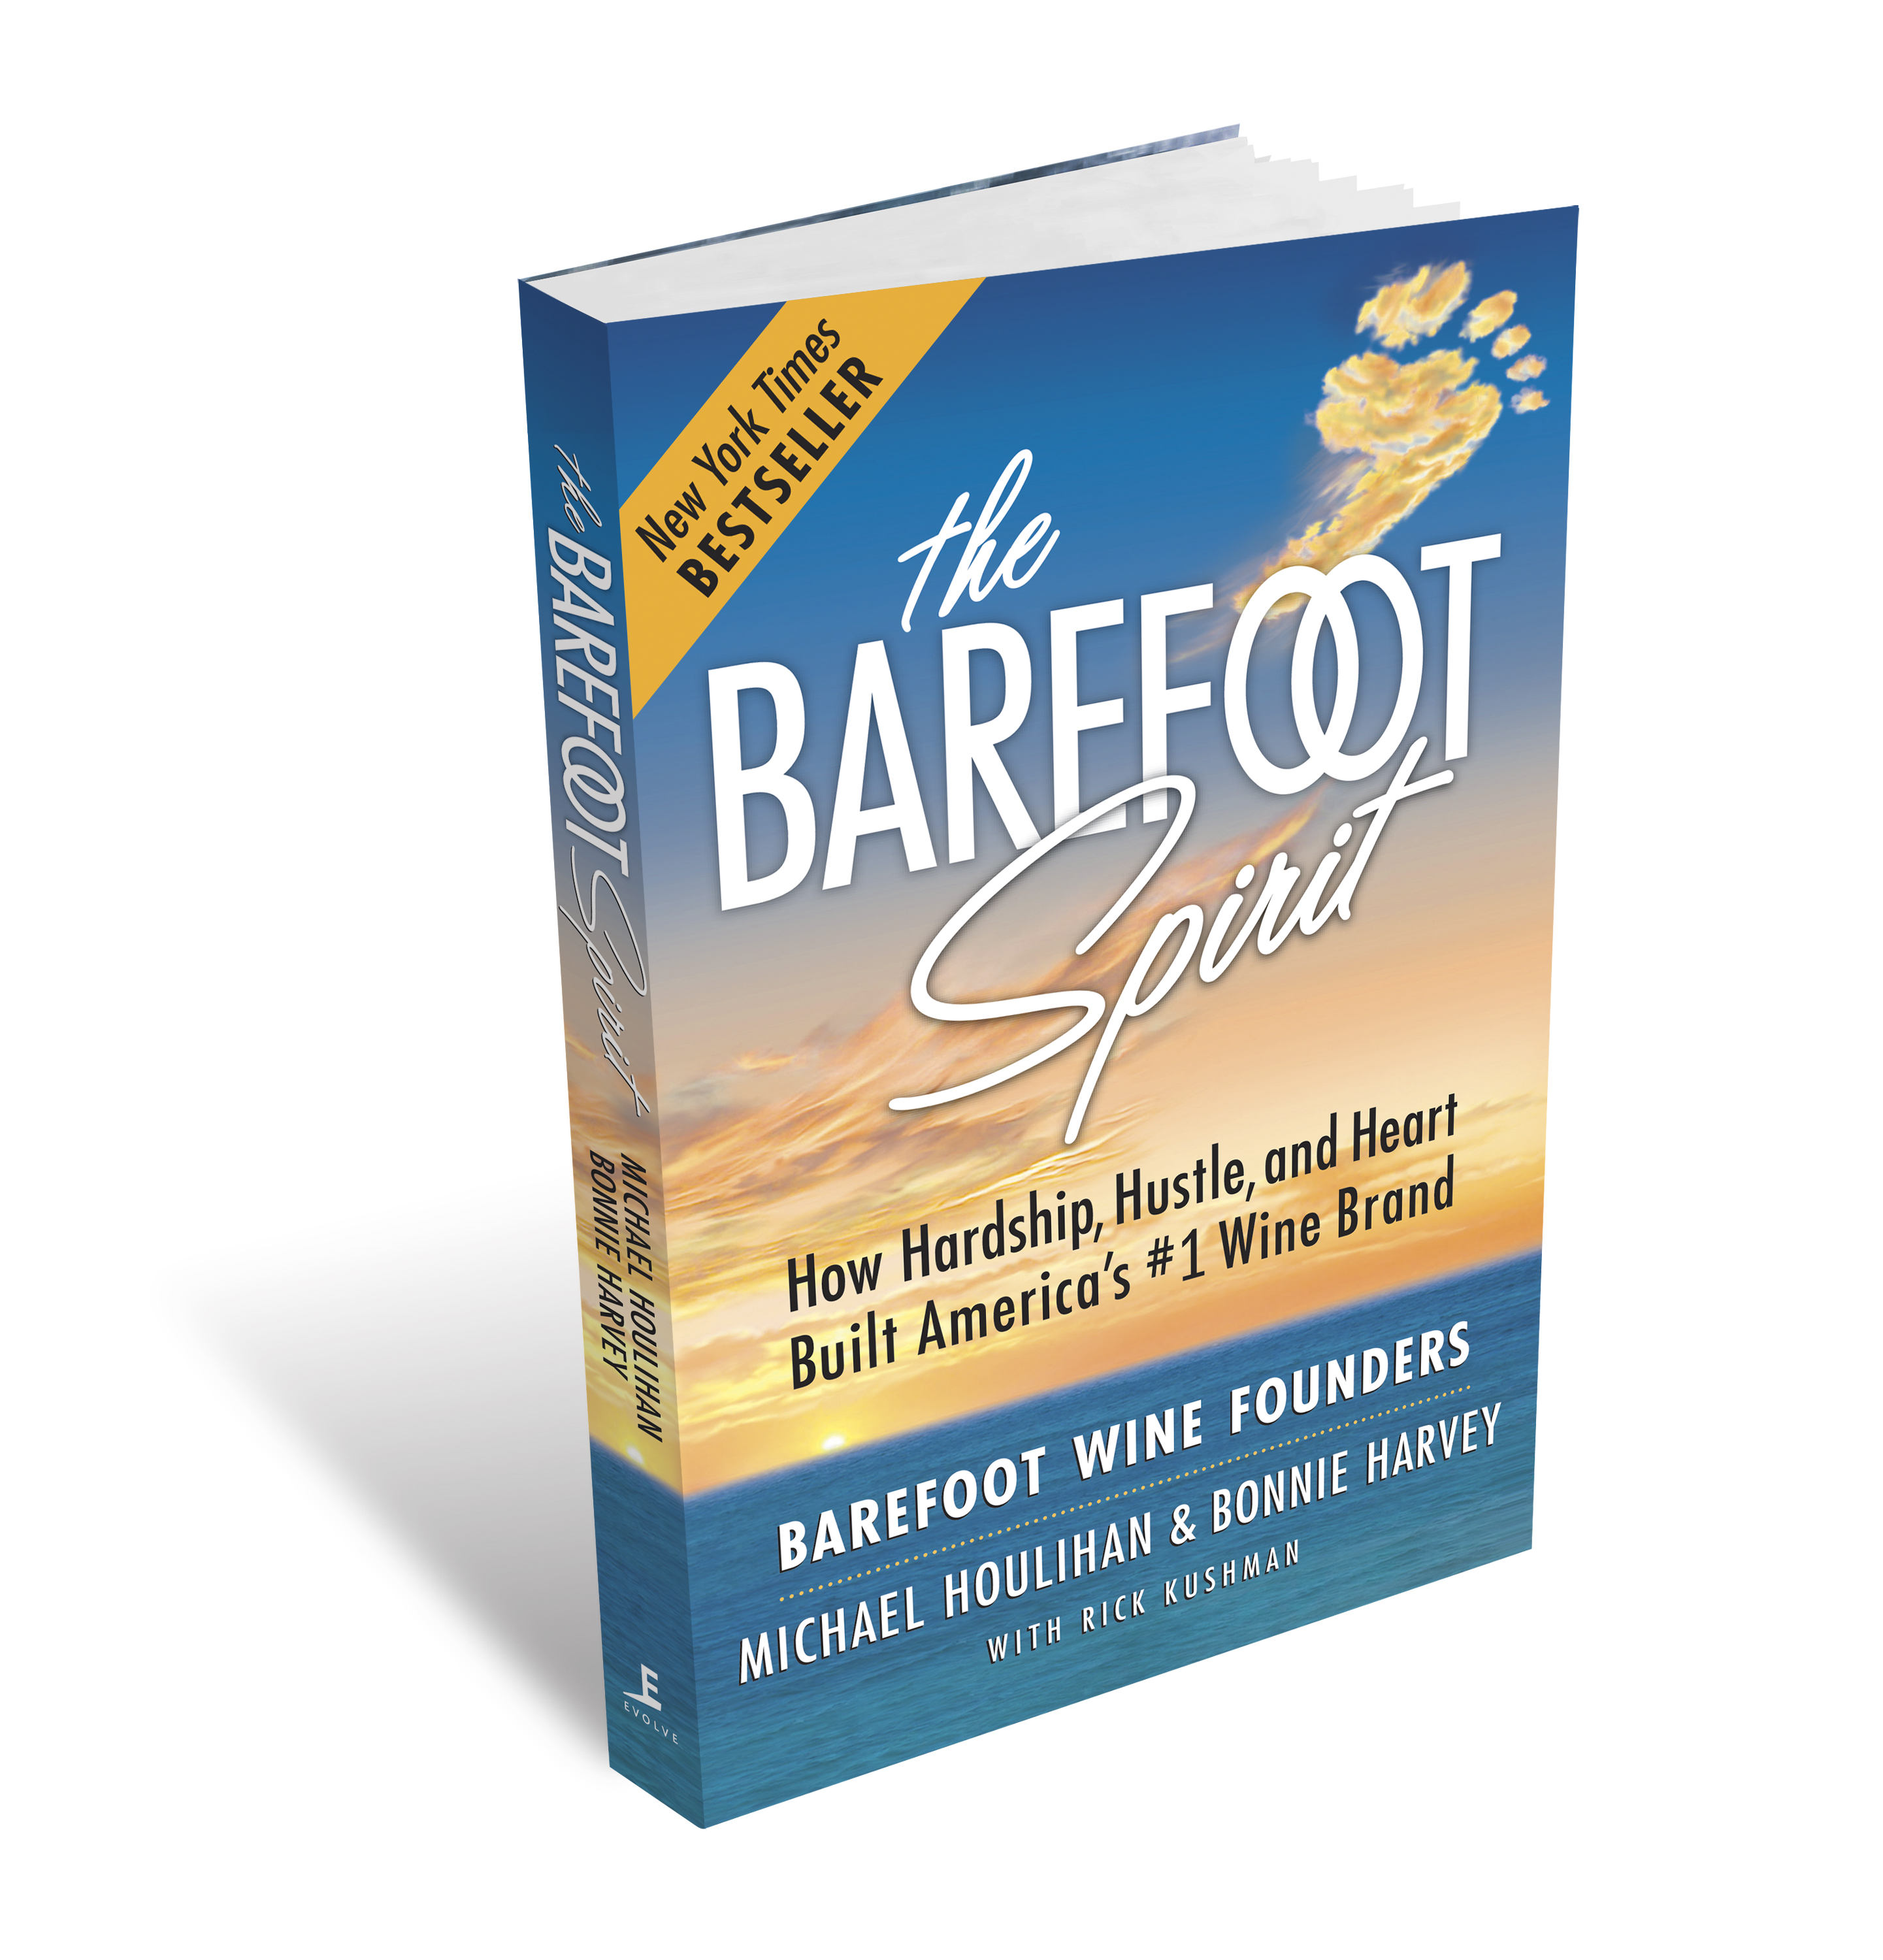 BarefootSpirit_3D Image with Shadow